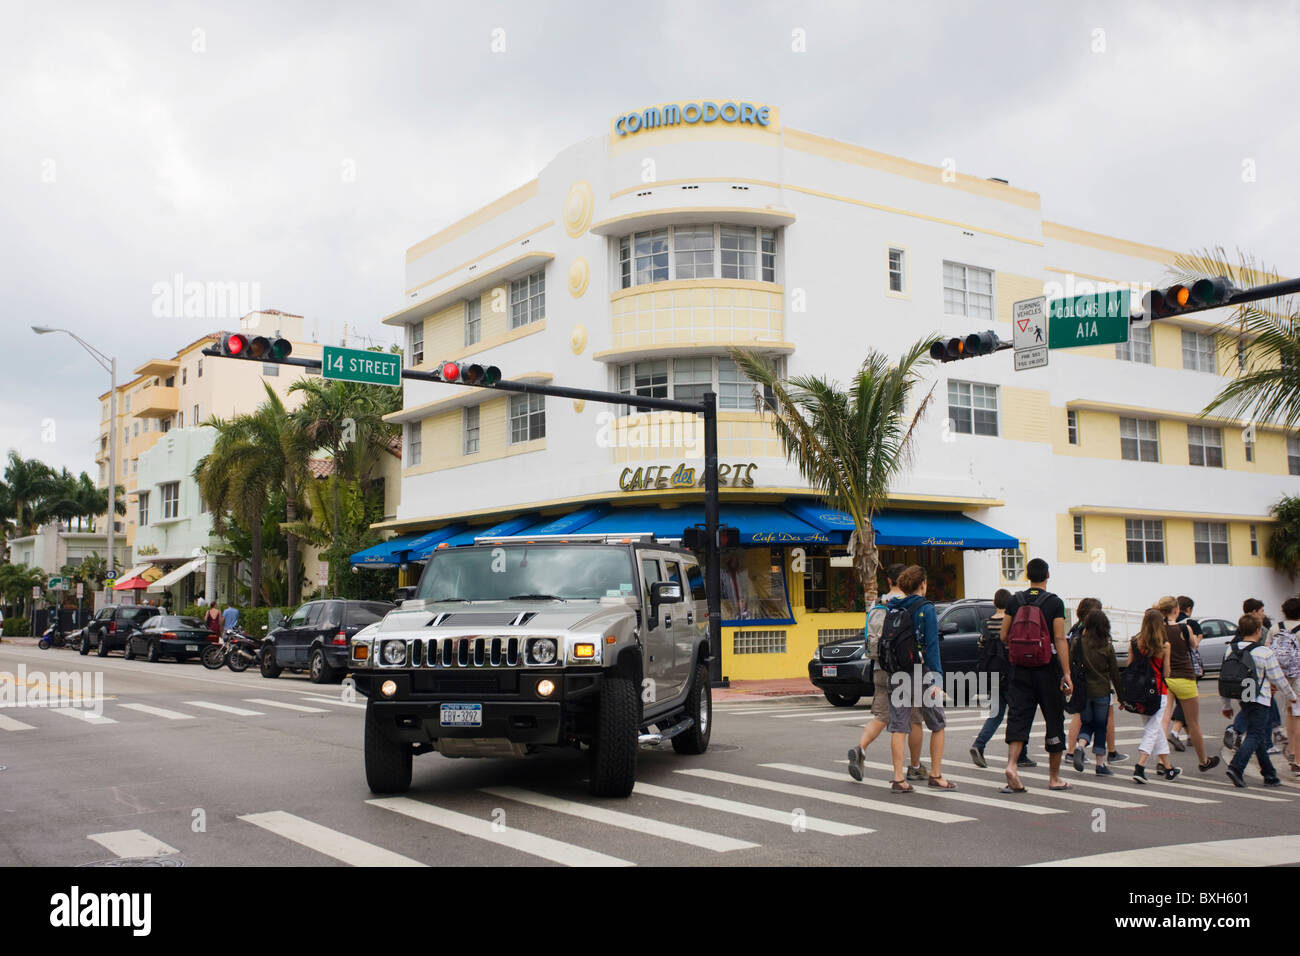 Hummer at corner of Collins Avenue and 14th Street by the Commodore and Cafe des Arts, South Beach, Miami, USA - Stock Image